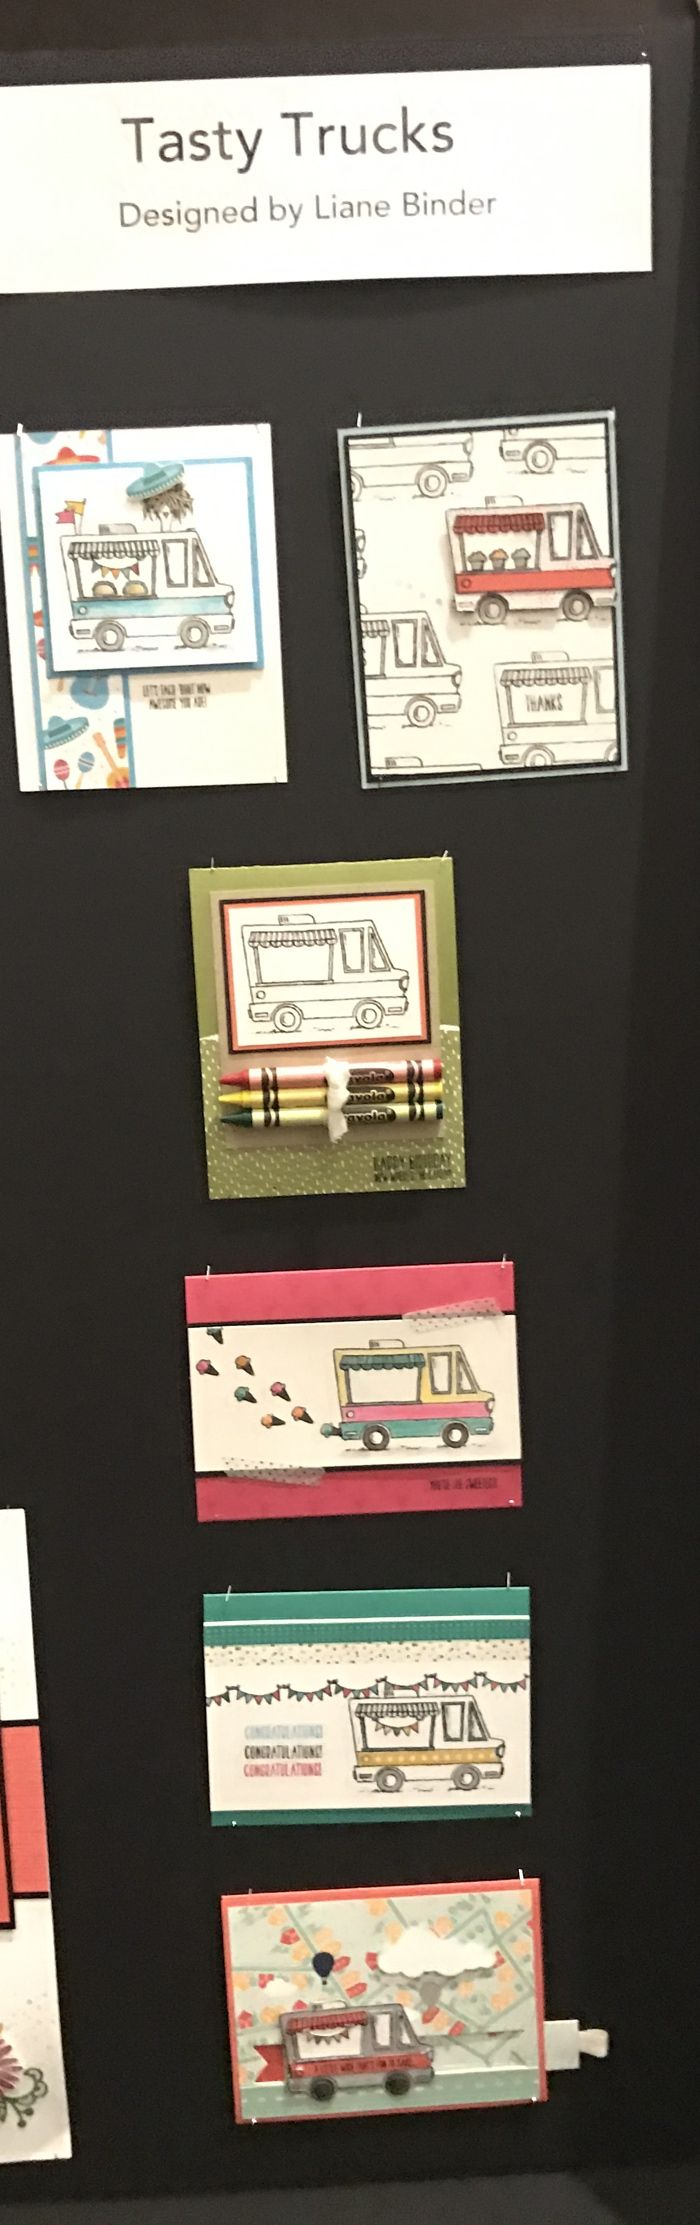 """The """"Tasty Trucks"""" stamp set is from the Stampin' Up! 2017 Sale-a-bration Catalogue.  This display was made by Canadian Liane Binder!"""